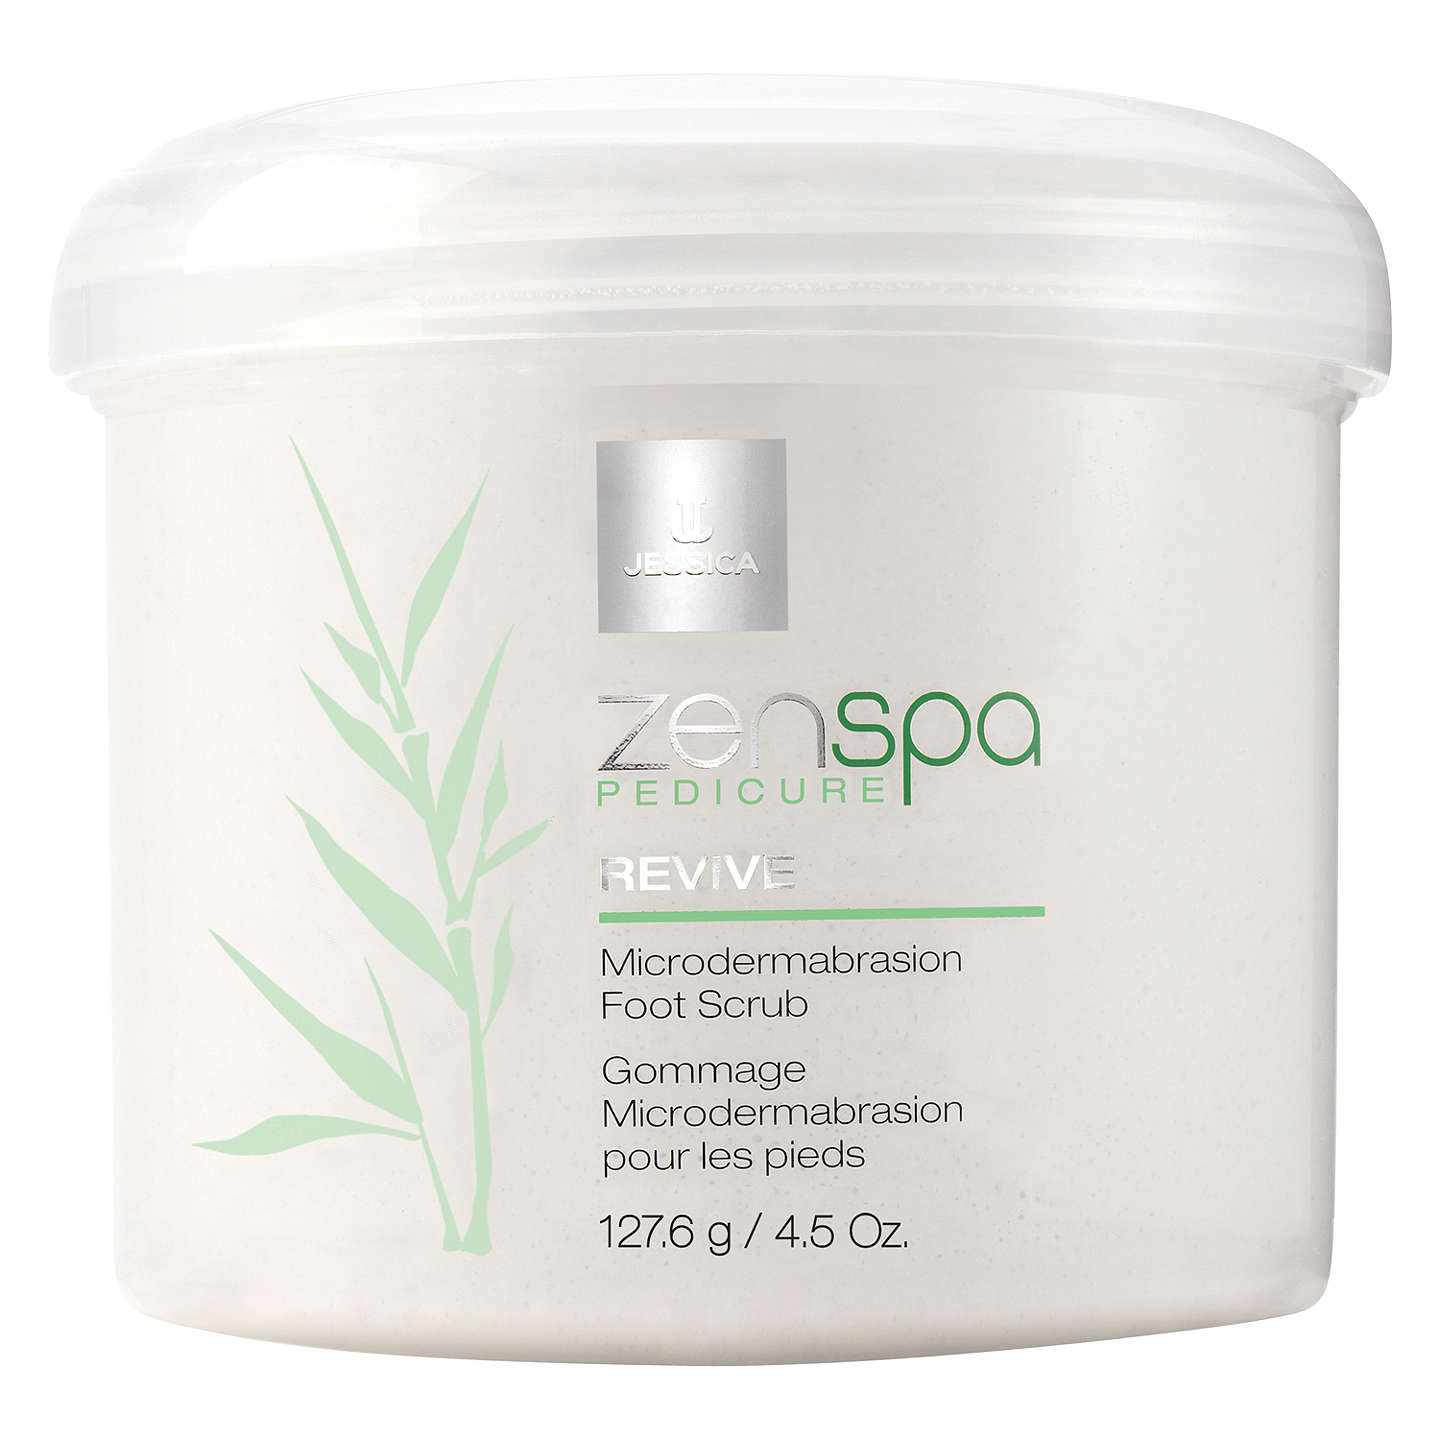 BuyJessica Zenspa Revive Microdermabrasion Foot Scrub, 127.6g Online at johnlewis.com